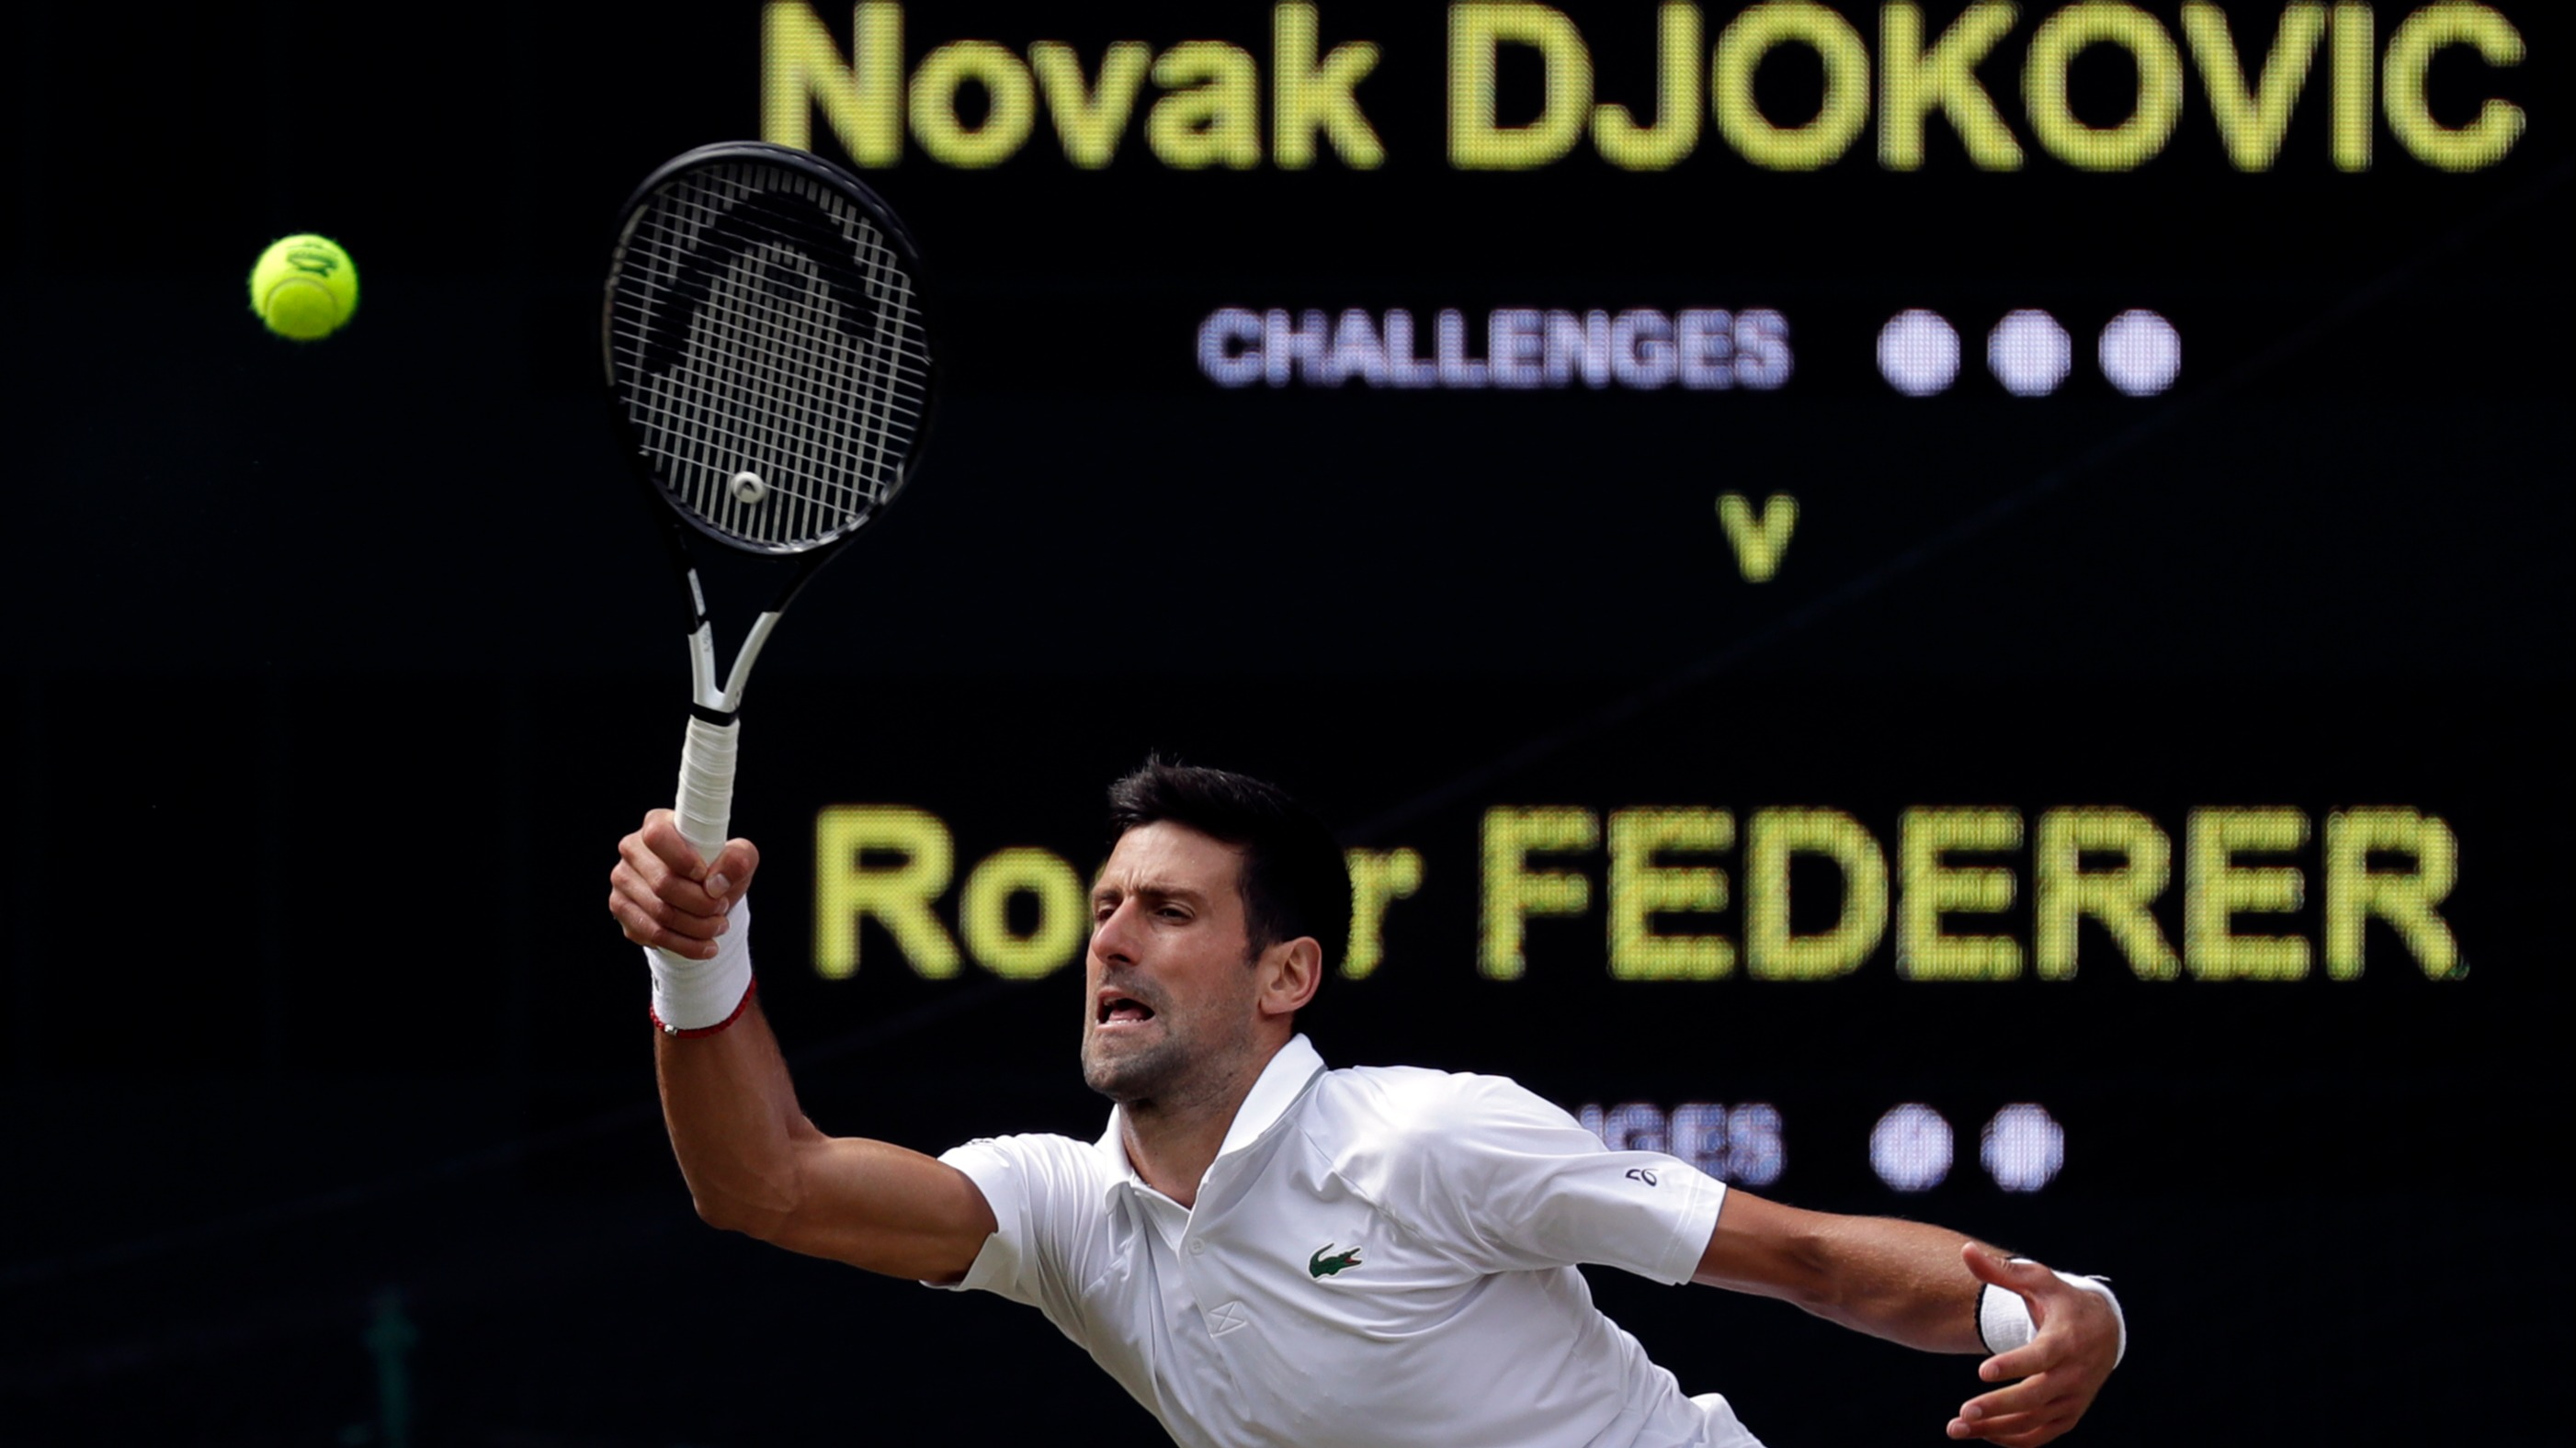 2019 Men S U S Open Odds Novak Djokovic Favored Coming Off Wimbledon Victory